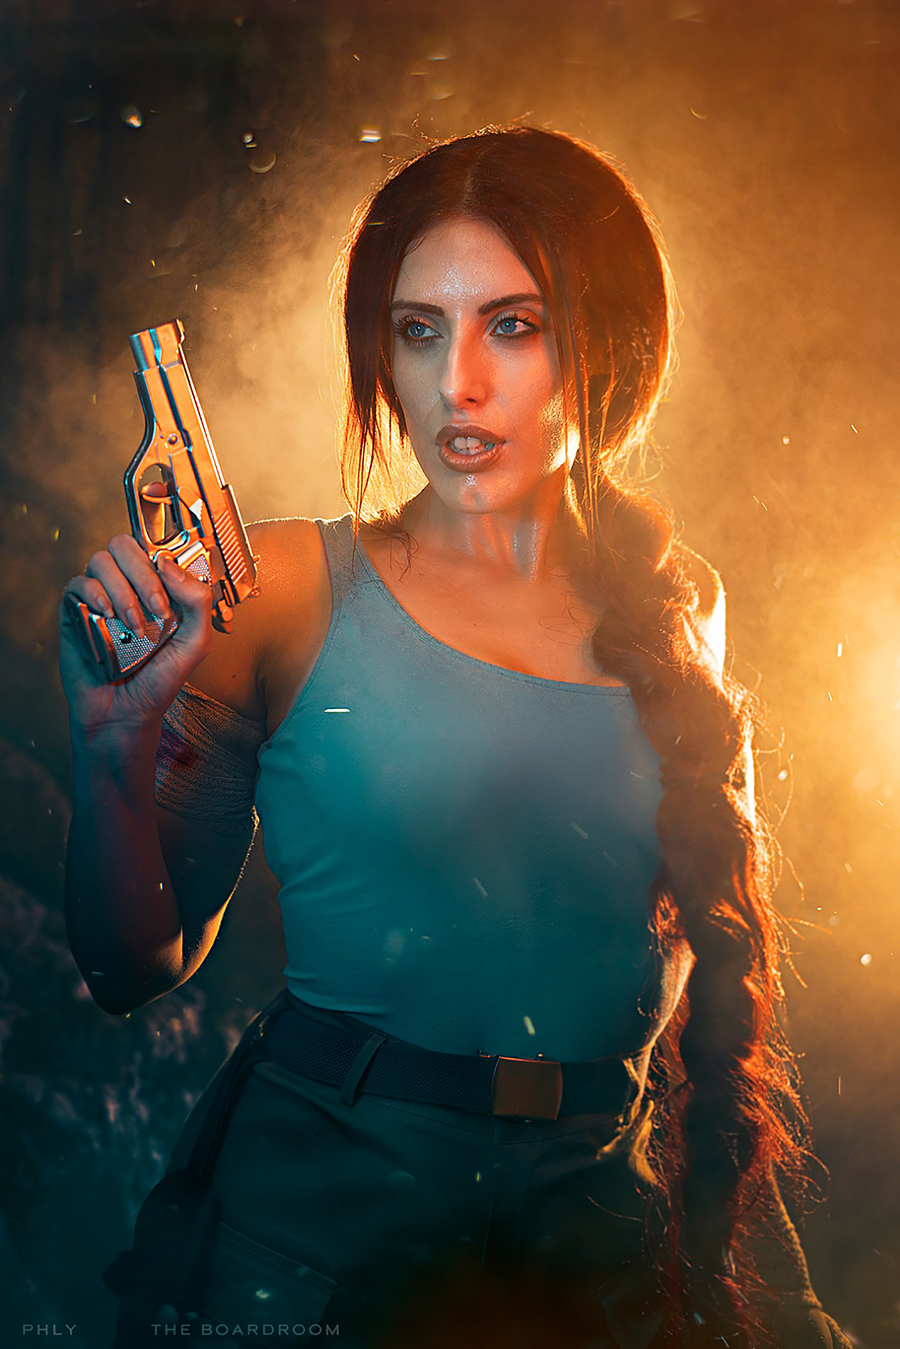 Tomb Raider / Photography by The Boardroom – PHLY, Model Arabella, Makeup by Arabella, Post processing by The Boardroom – PHLY, Stylist Arabella, Taken at The Boardroom – PHLY, Hair styling by Arabella / Uploaded 21st July 2019 @ 08:33 PM